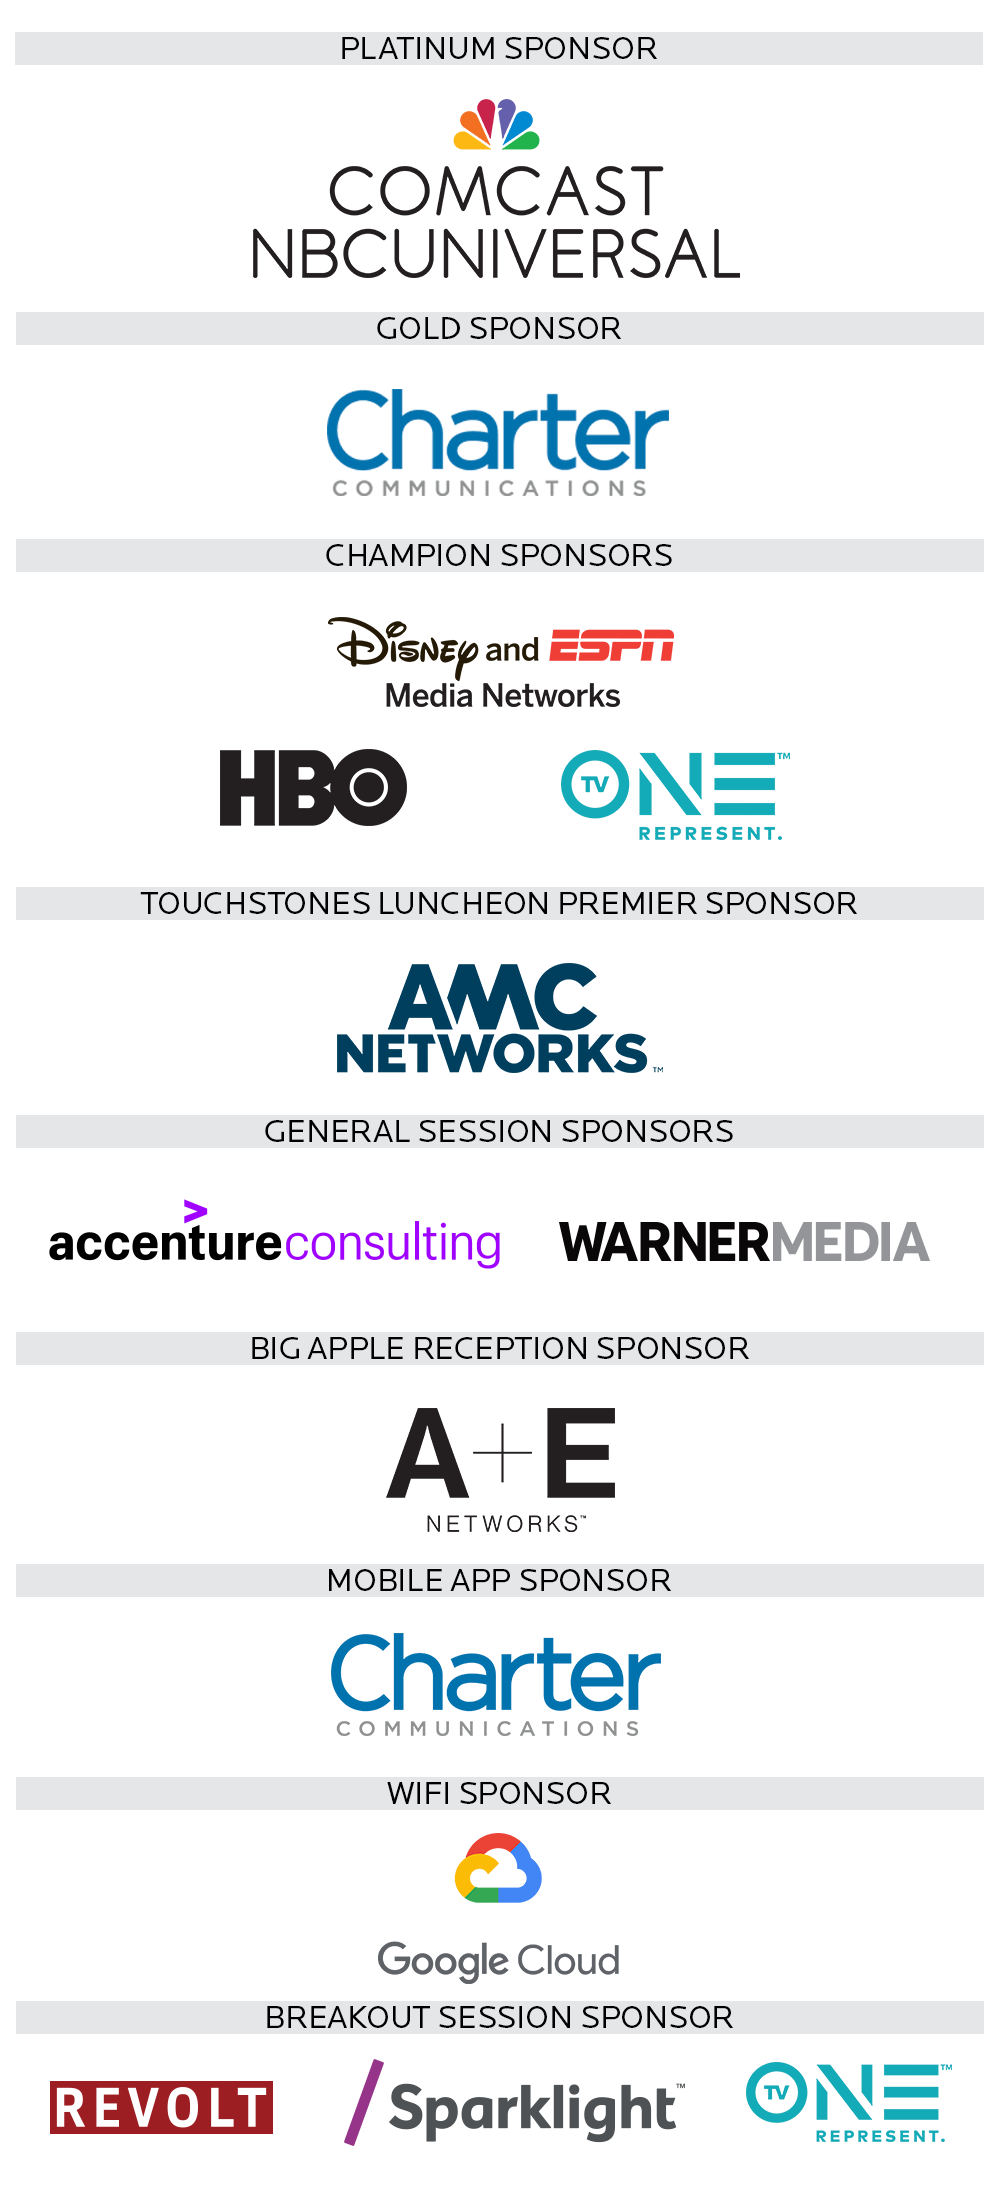 WICT Leadership Conference – Women in Cable Telecommunications